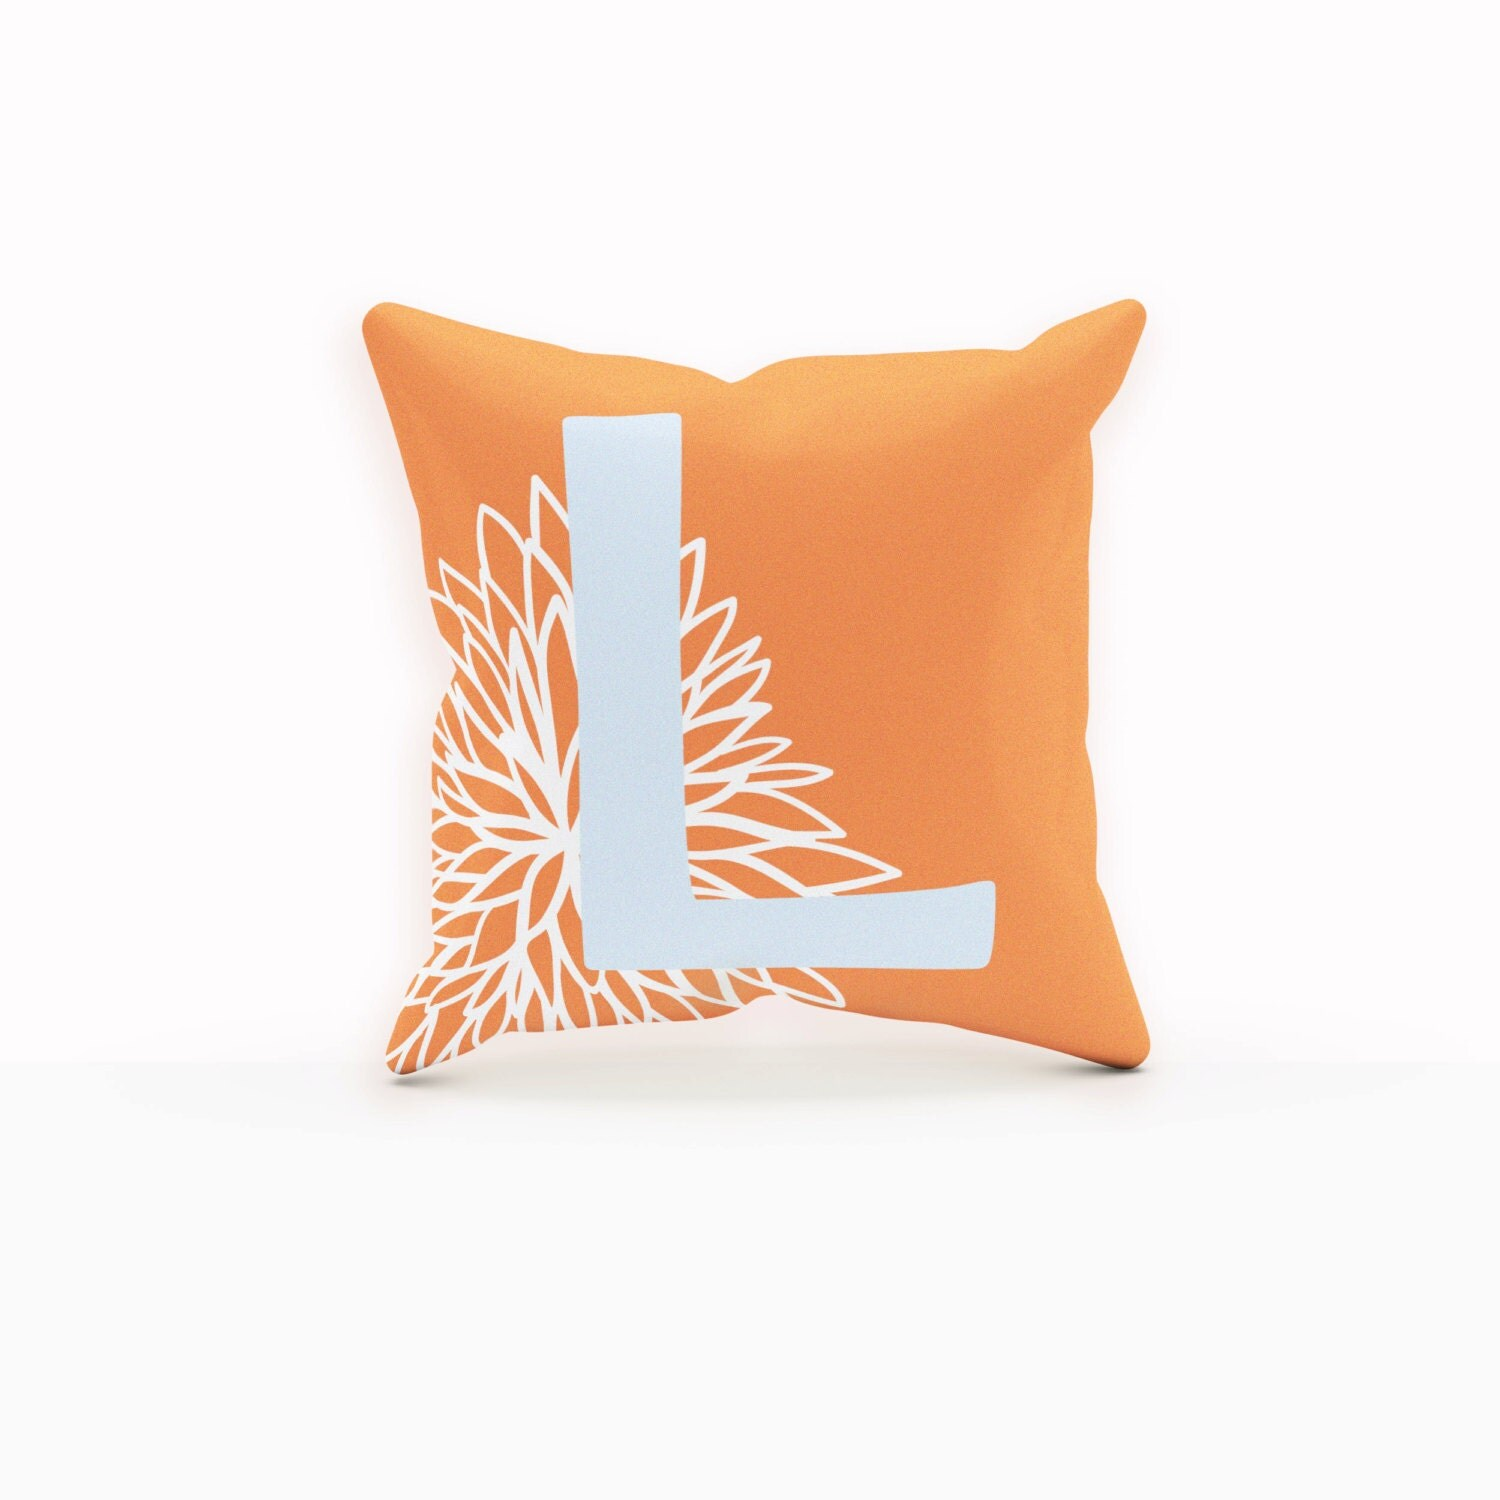 Throw Pillows Orange Rustic Monogram Rustic Modern Decor